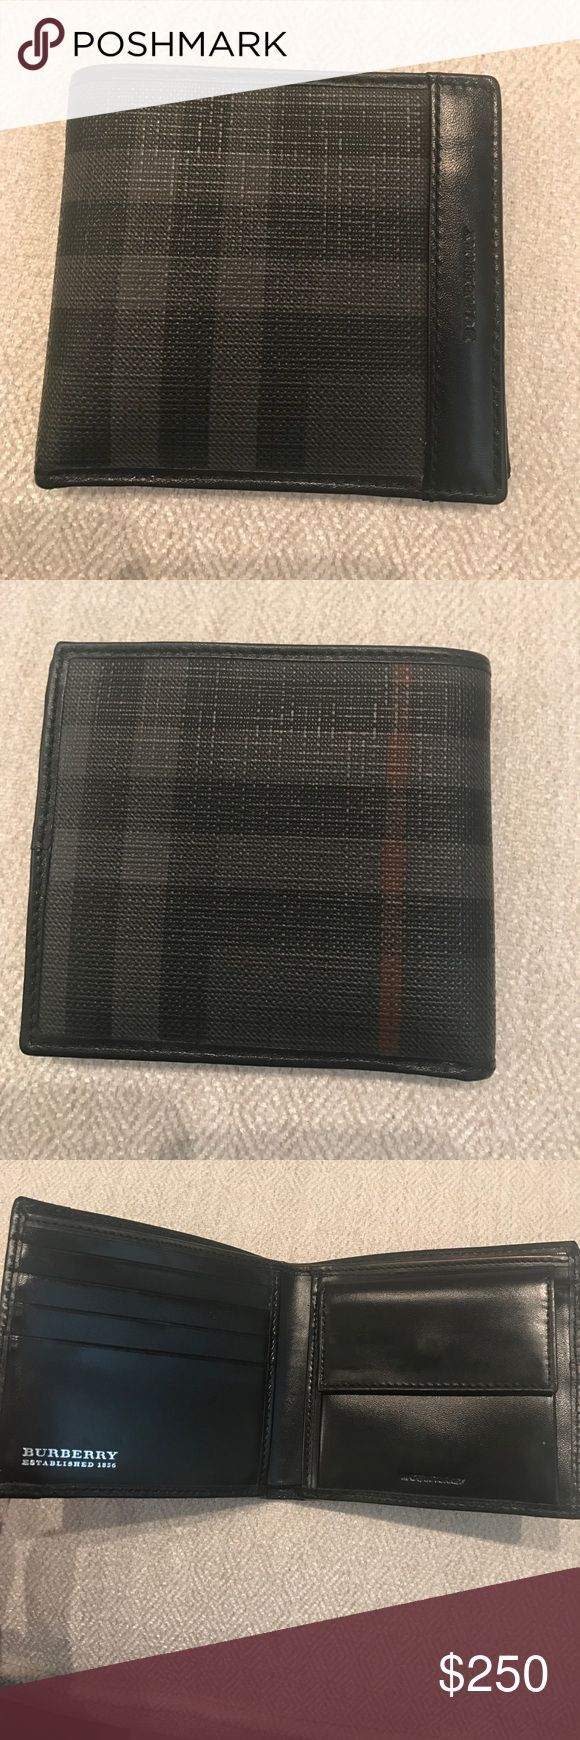 Men's Burberry check wallet Men's Burberry flap check wallet in excellent condition, minor wear from minimal use. 4 card slots, 3 additional slots for cards or money, one long compartment for money, and buttoned change pouch. When closed 4 inches by 4 inches. Burberry Bags Wallets